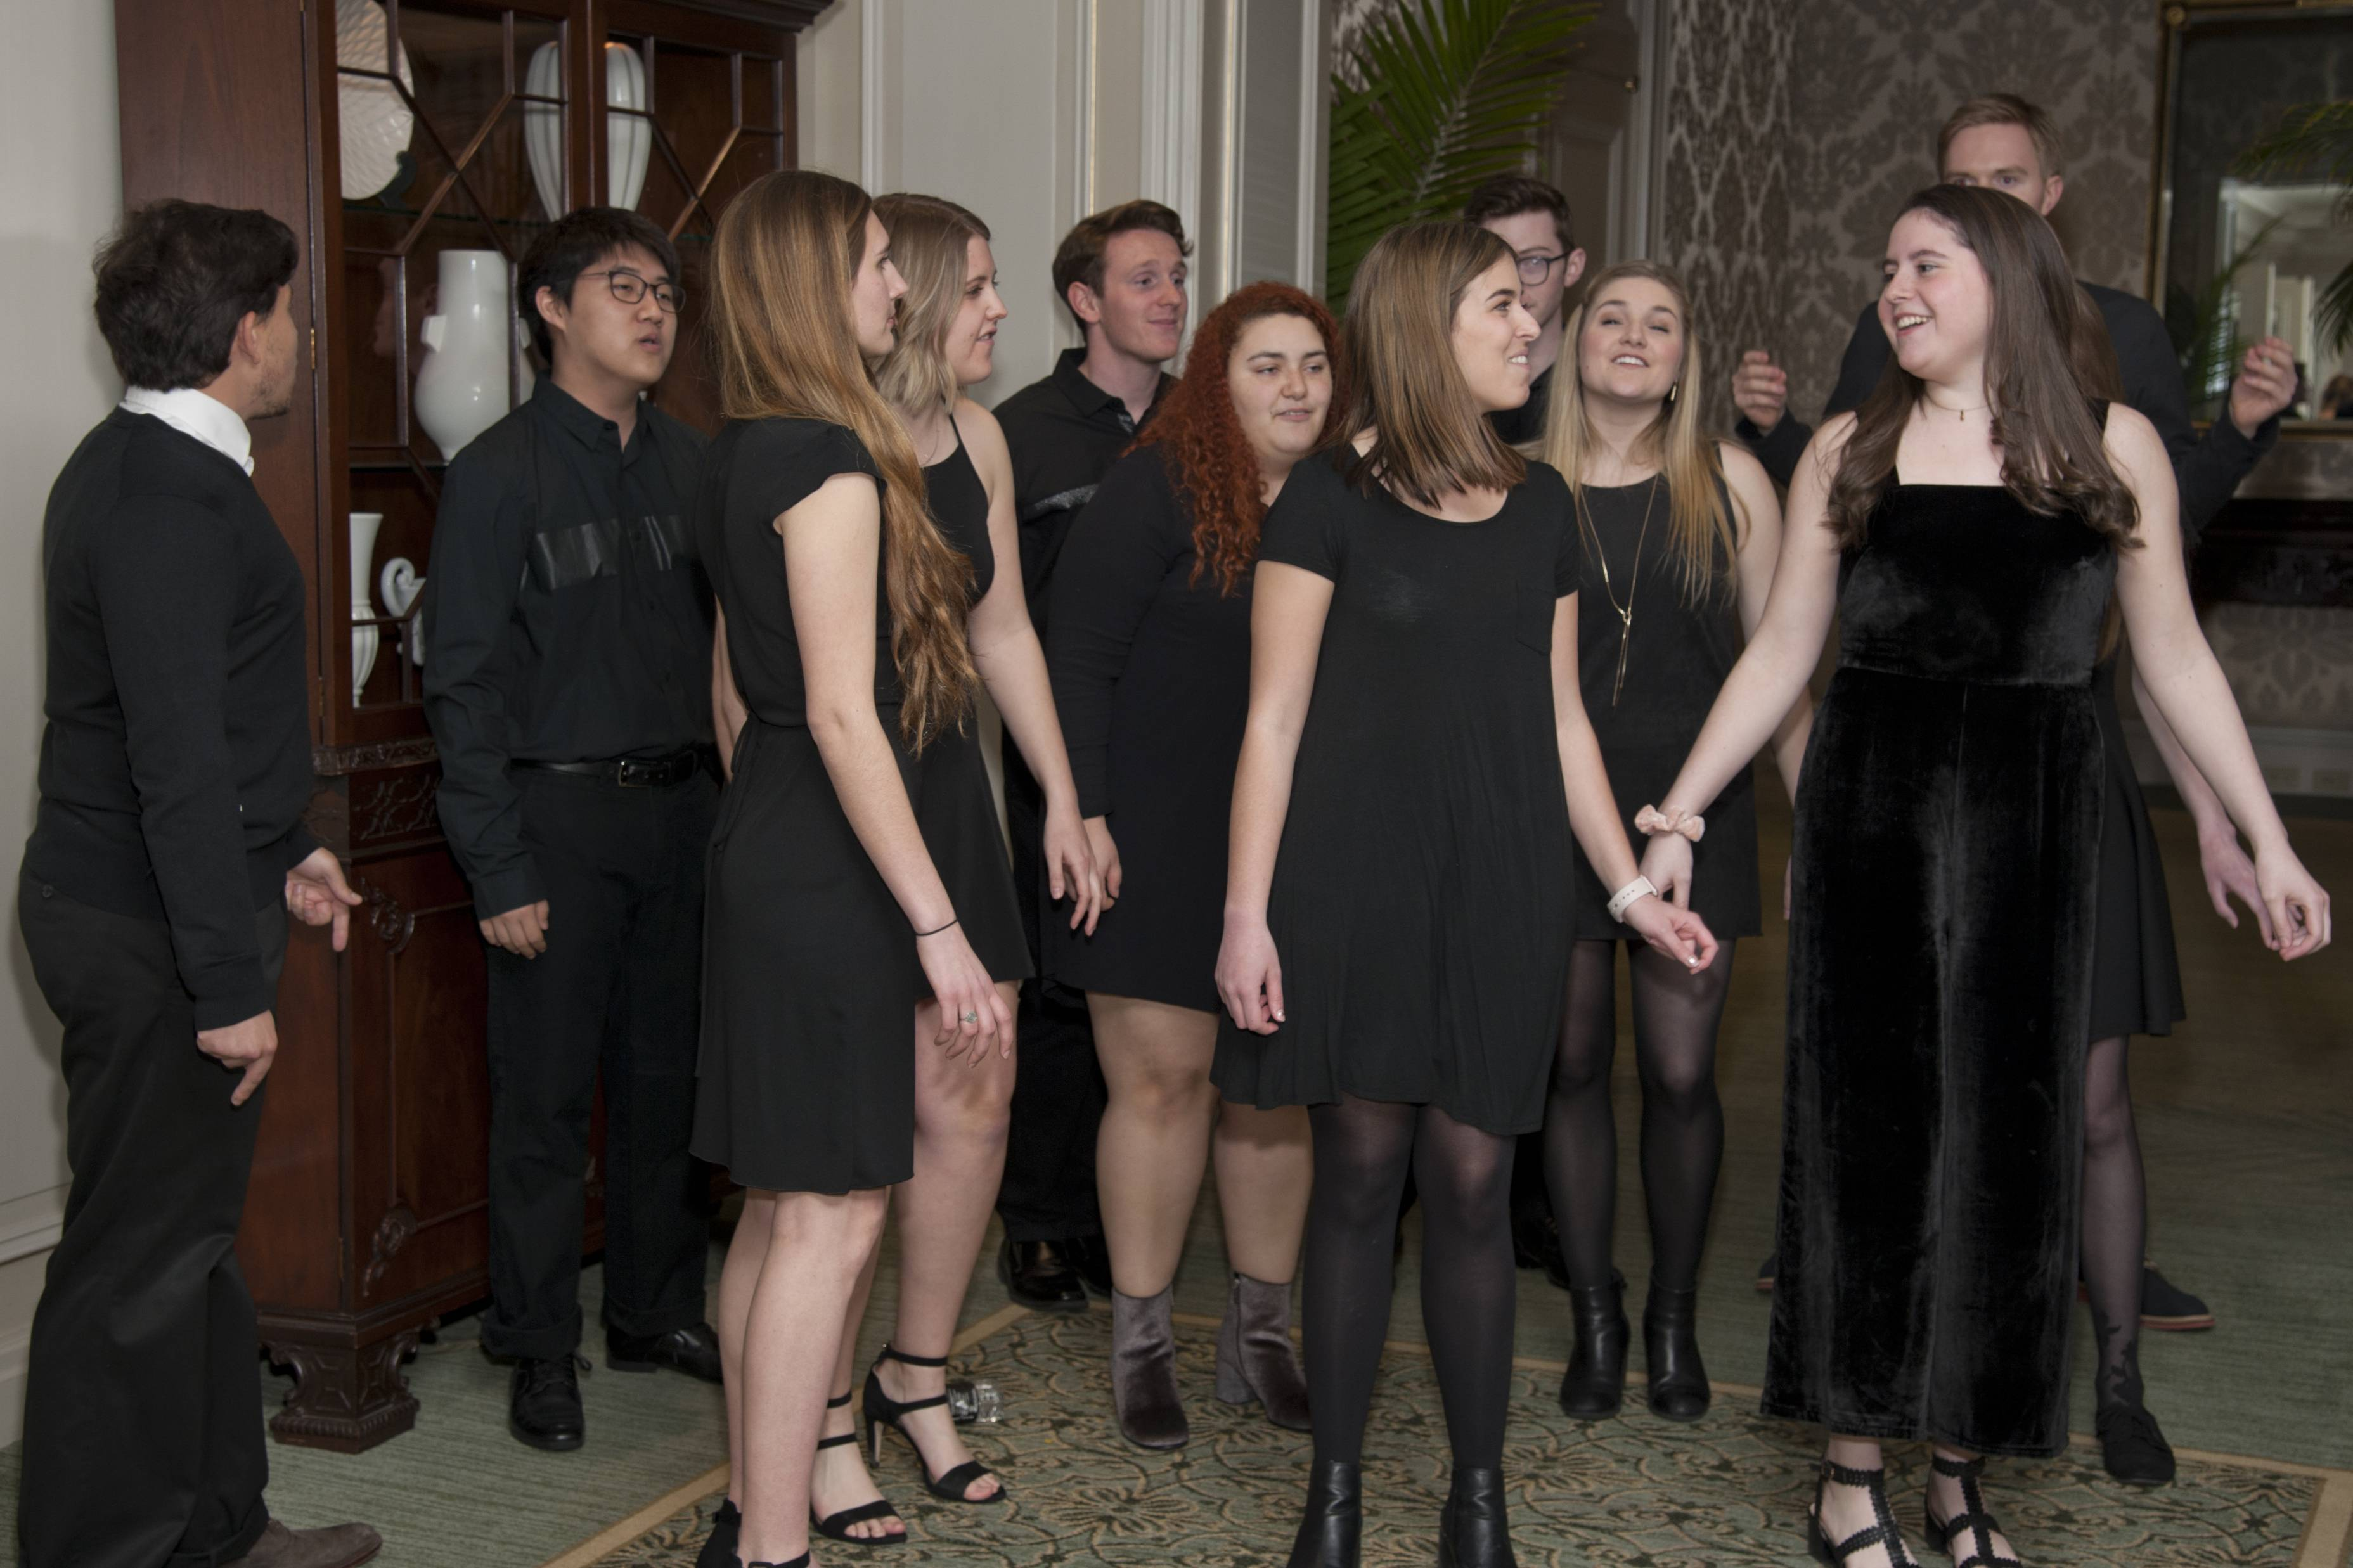 COURTESY OF ROBERT CARLNorthwestern University A Capella singing groupmakes an appearance during the Clearbrook Event at the Four Seasons Hotel Chicago on Friday, April 27, 2018.